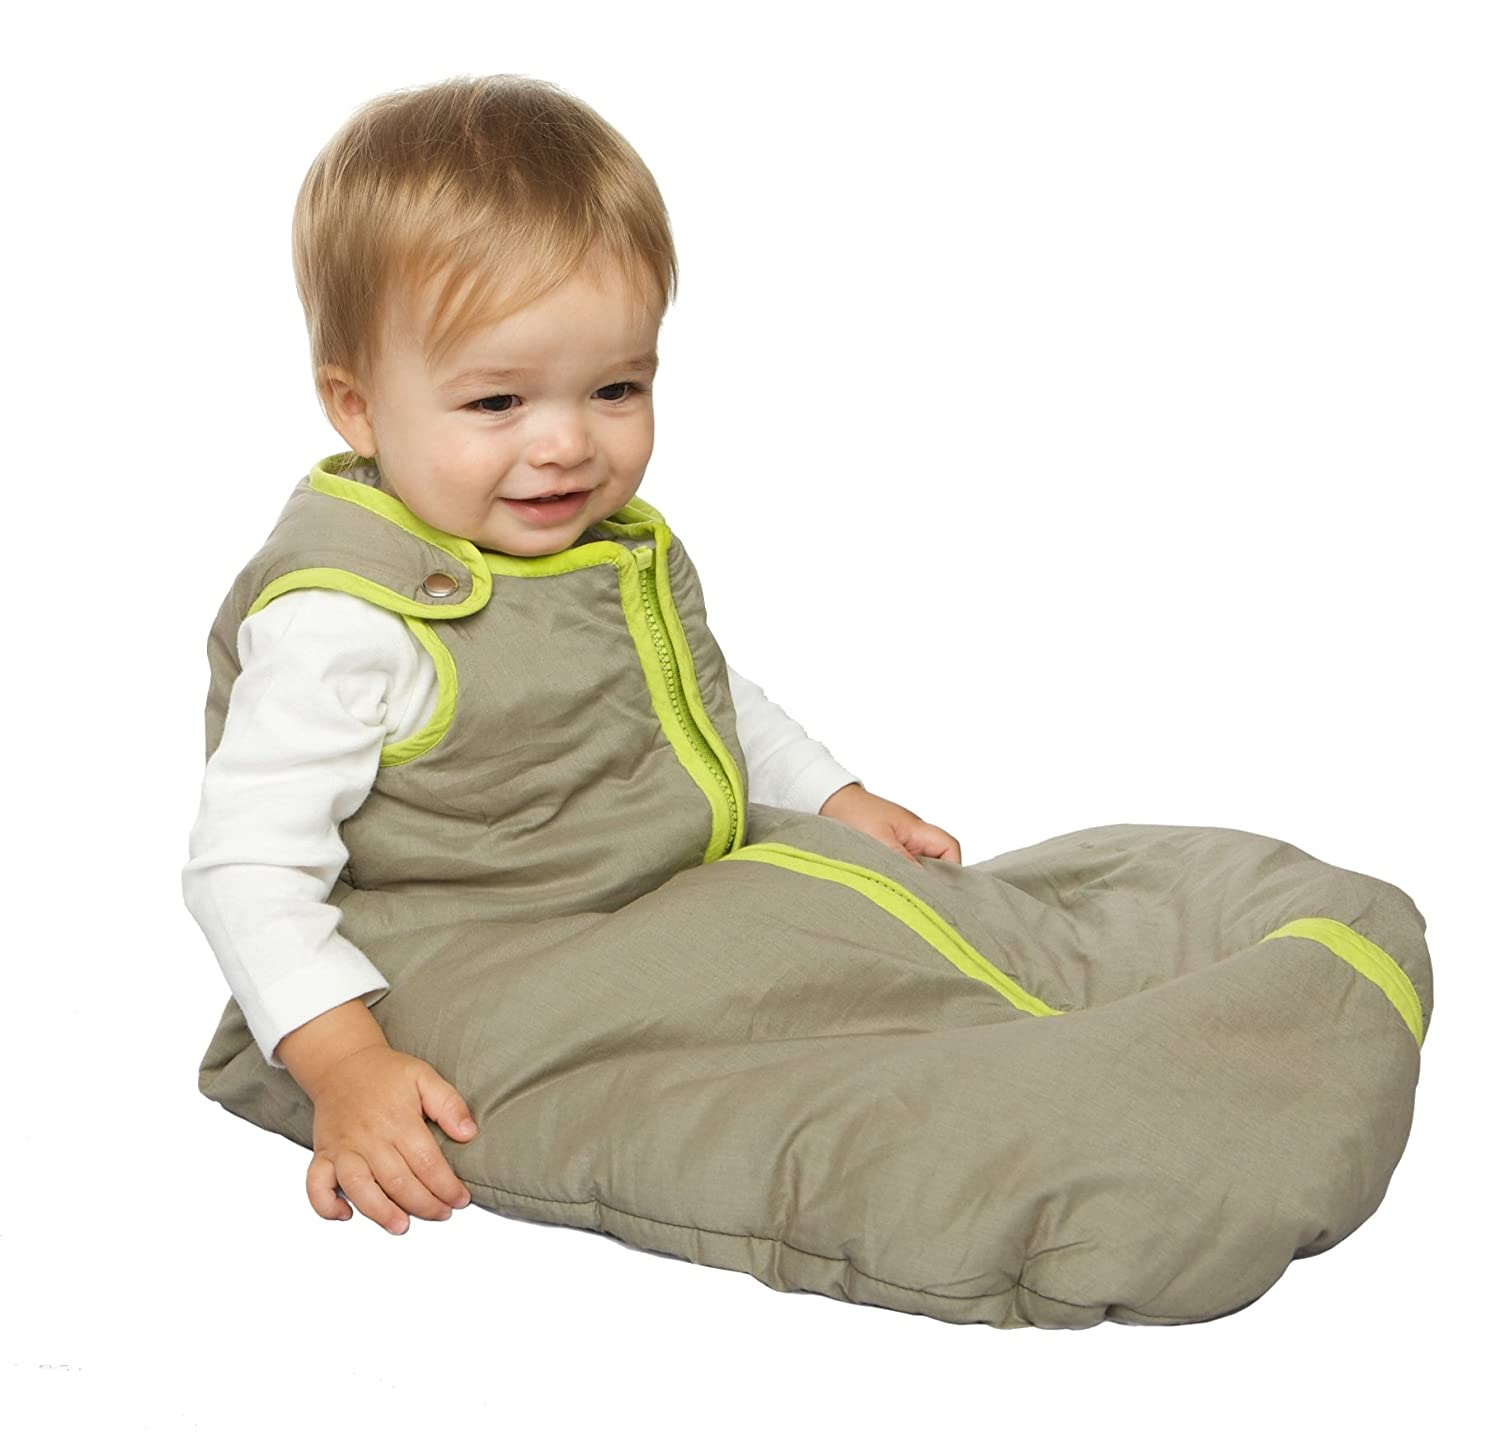 How To Choose The Best Baby Sleep Sack For Your Child 21